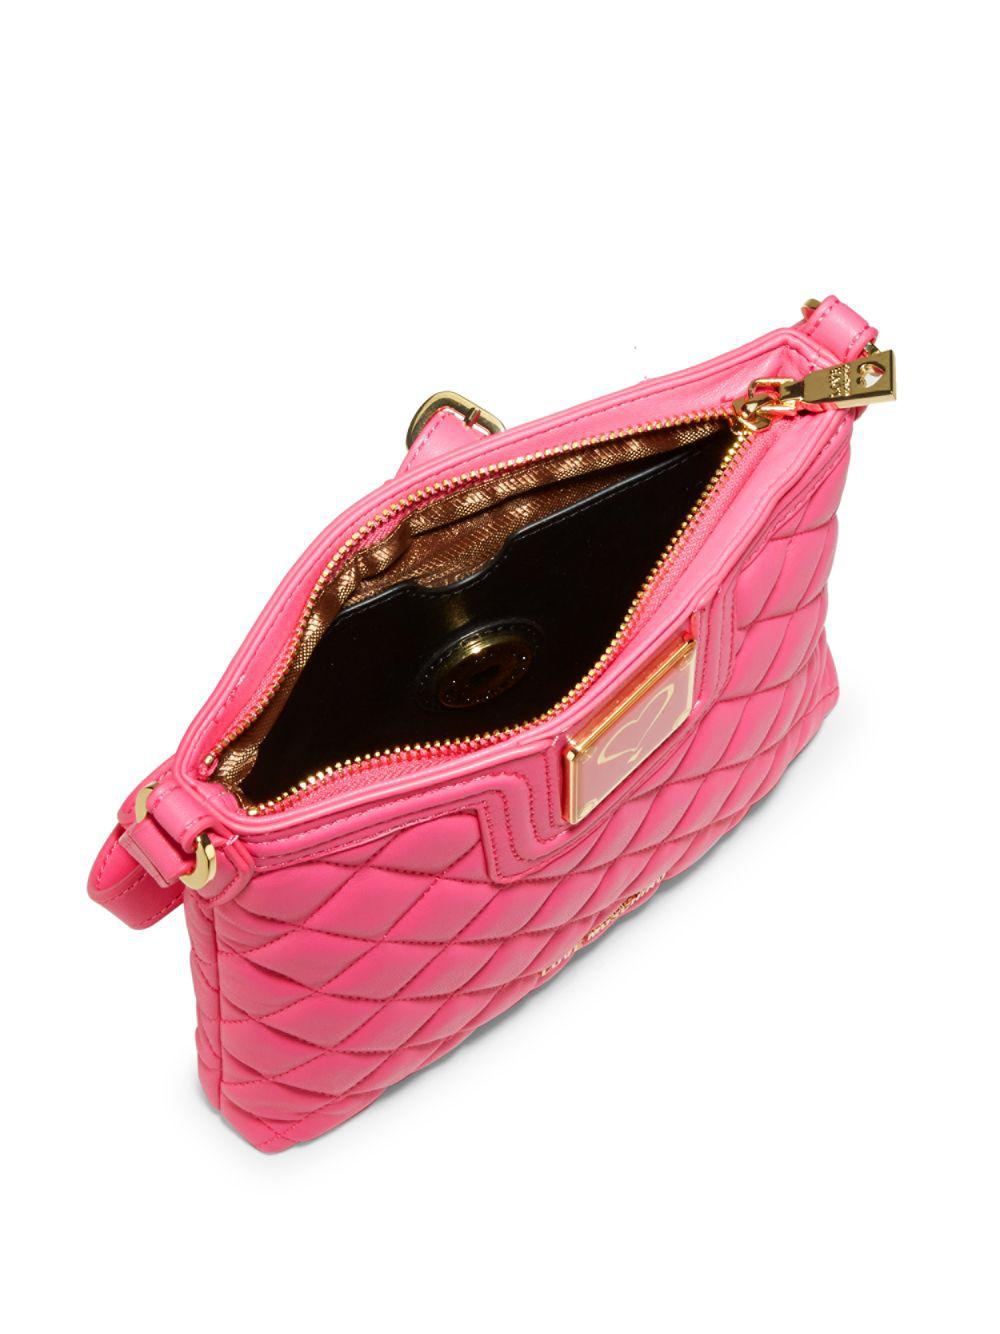 Love Moschino Leather Quilted Crossbody Bag in Pink